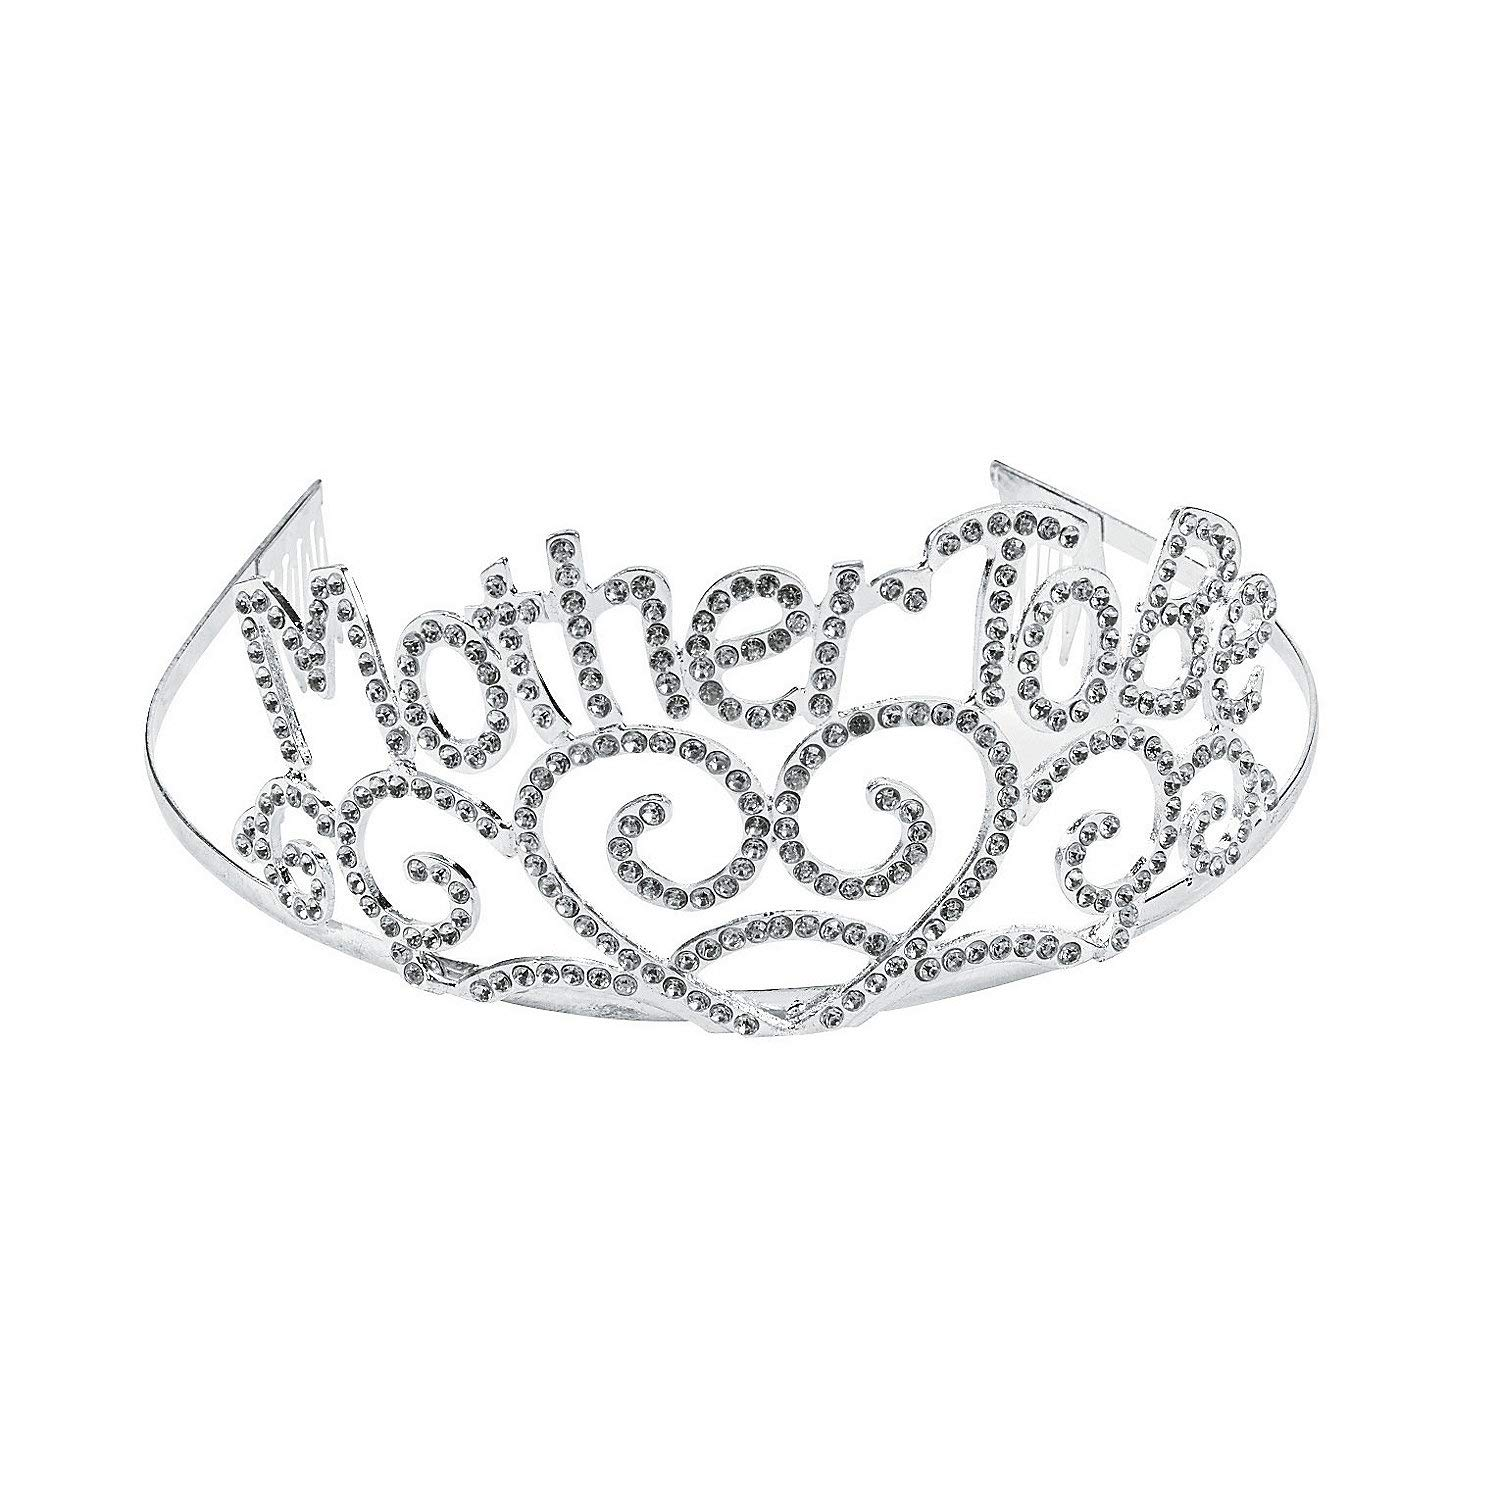 Fun Express - Mother to Be Tiara for Baby - Apparel Accessories - Hats - Tiaras & Crowns - Baby - 1 Piece